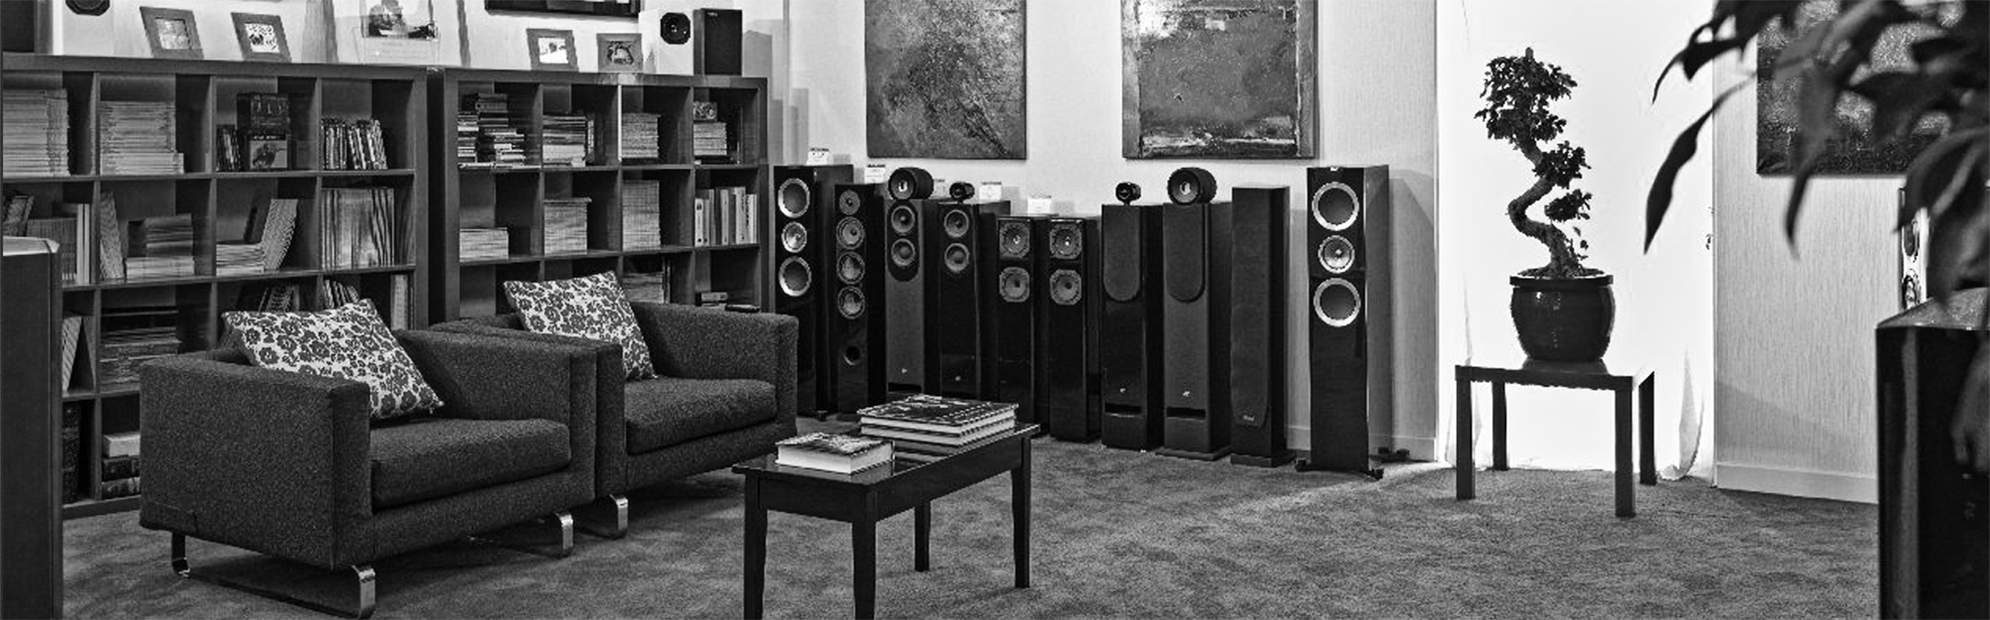 Magasin audiophile Tours